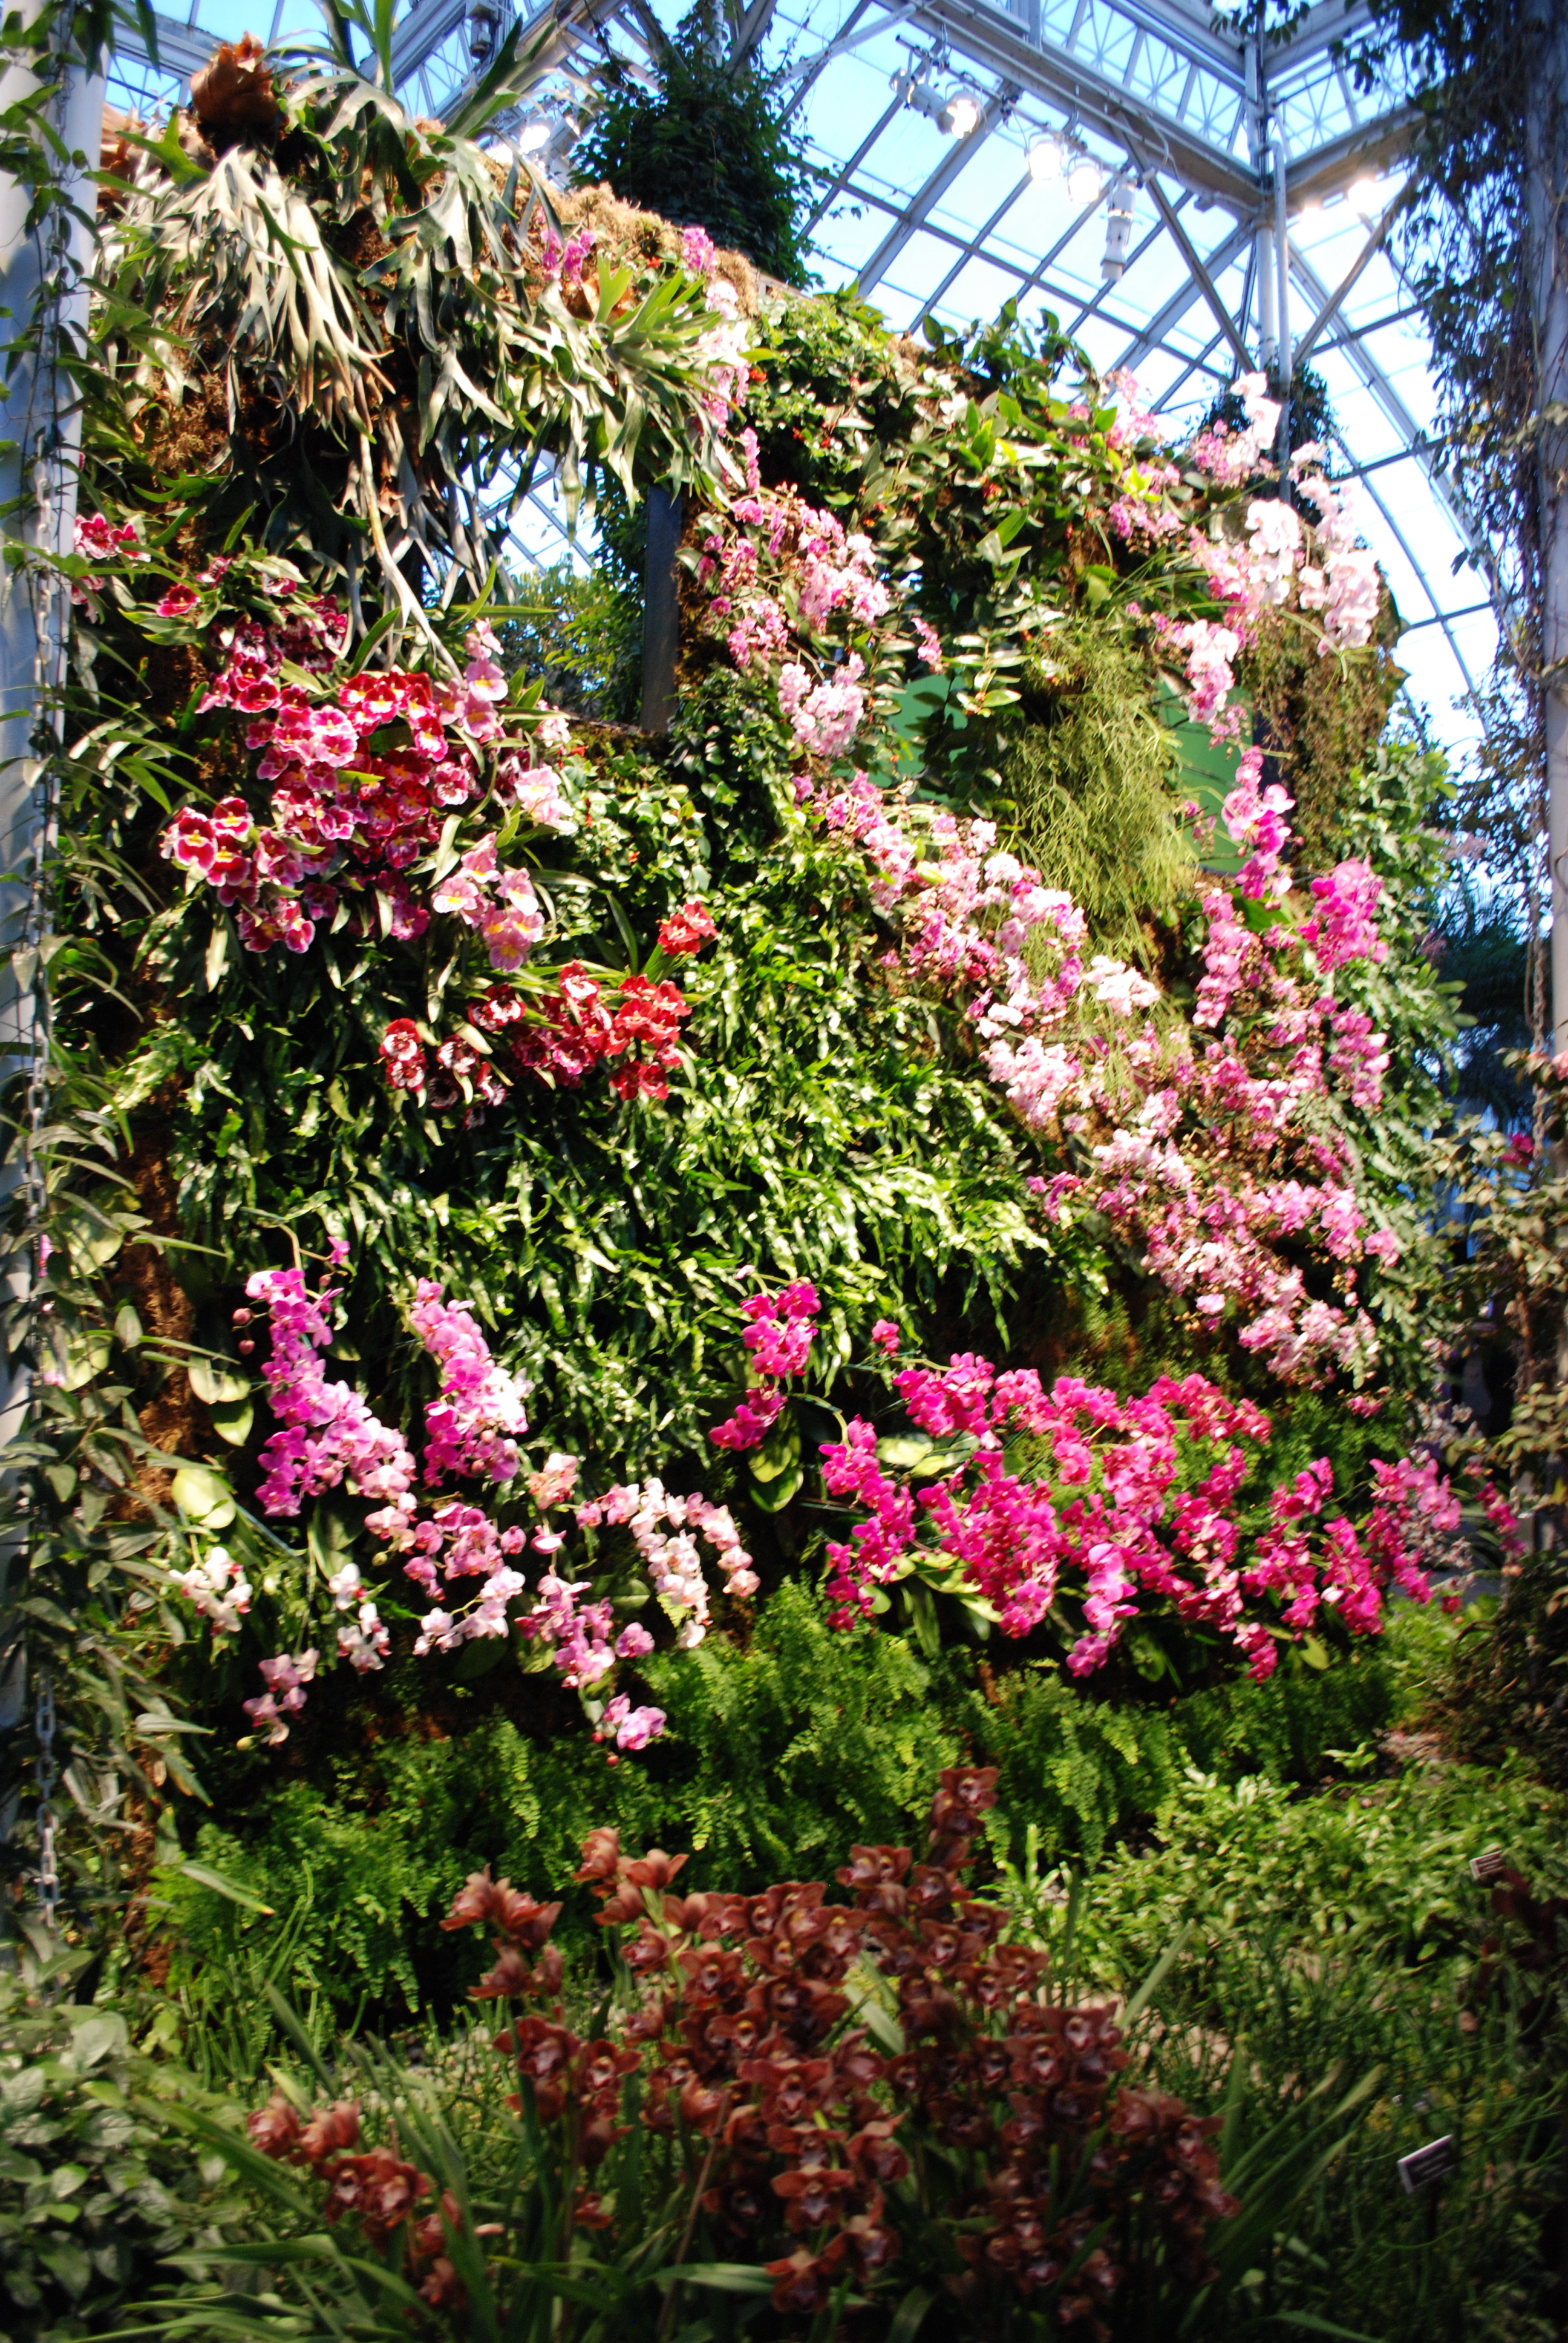 New York Botanical Garden Orchid Show Daedalus Design And Production Inc